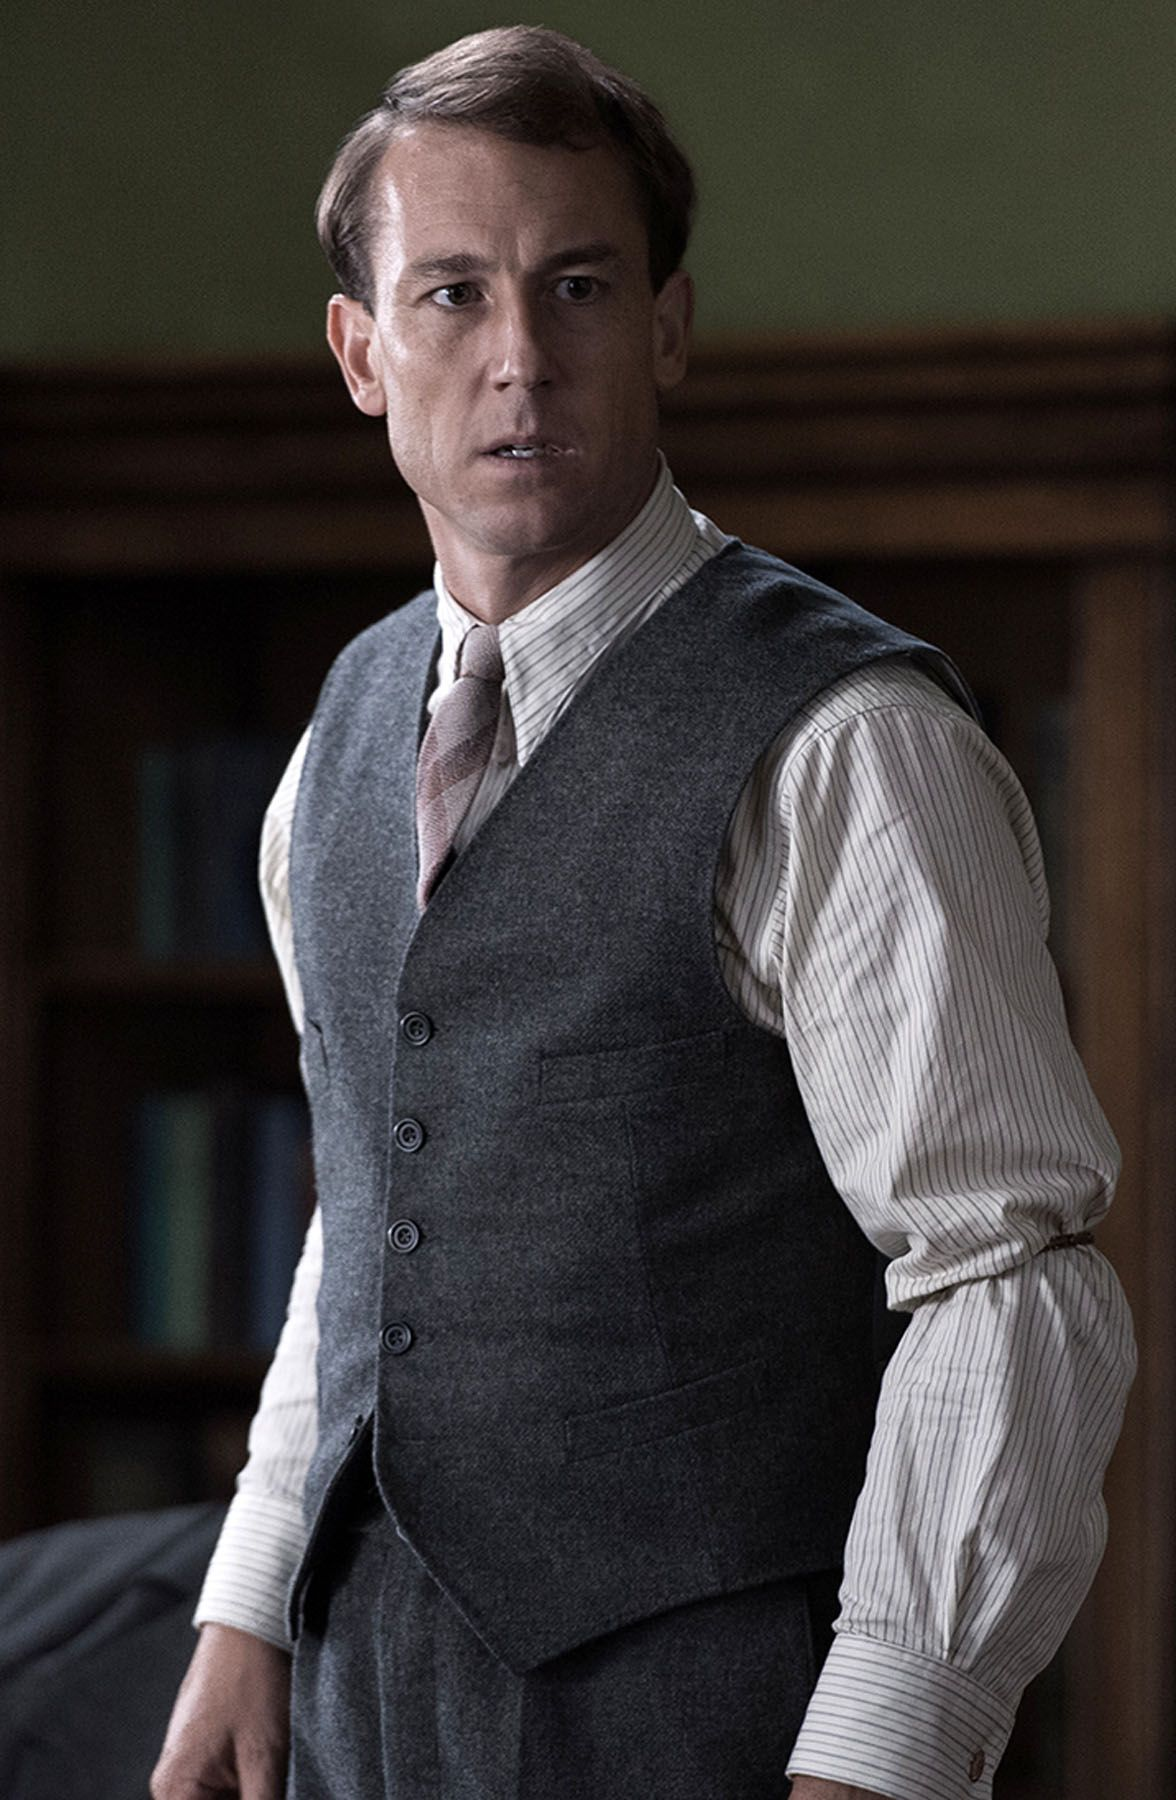 'Outlander': Tobias Menzies on Black Jack's Fate, and Frank's Quiet Tragedy - Outlander star Tobias Menzies talks about the fate of Black Jack, as well as the quiet desperation of Frank Randall; plus, what he'd like to do next.